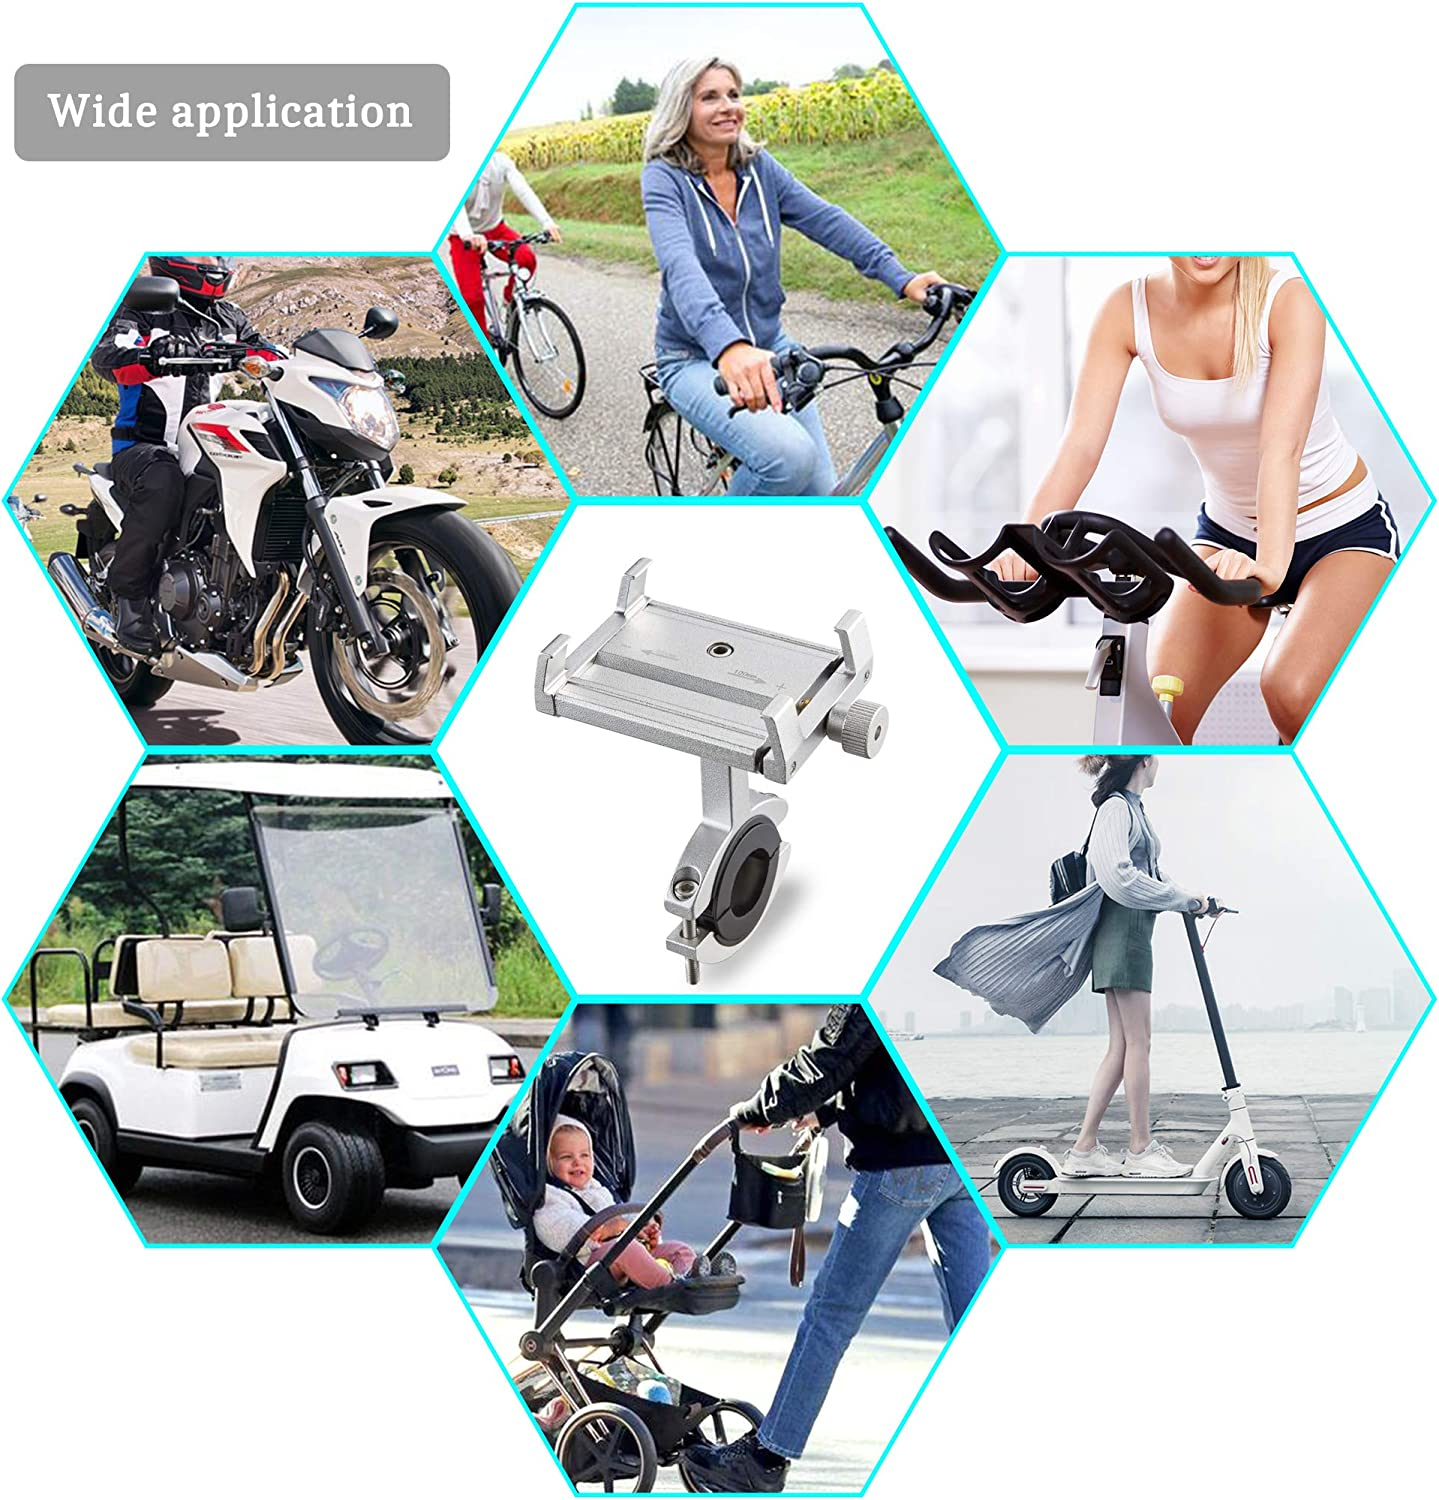 TOMALL Mountain Bike and Bicycle Aluminum Phone Mount Adjustable Anti Shake Metal Universal Bike Phone Mount Scooter Phone Holder Silver with Anti Shake Silicone Strap for Xiaomi M365